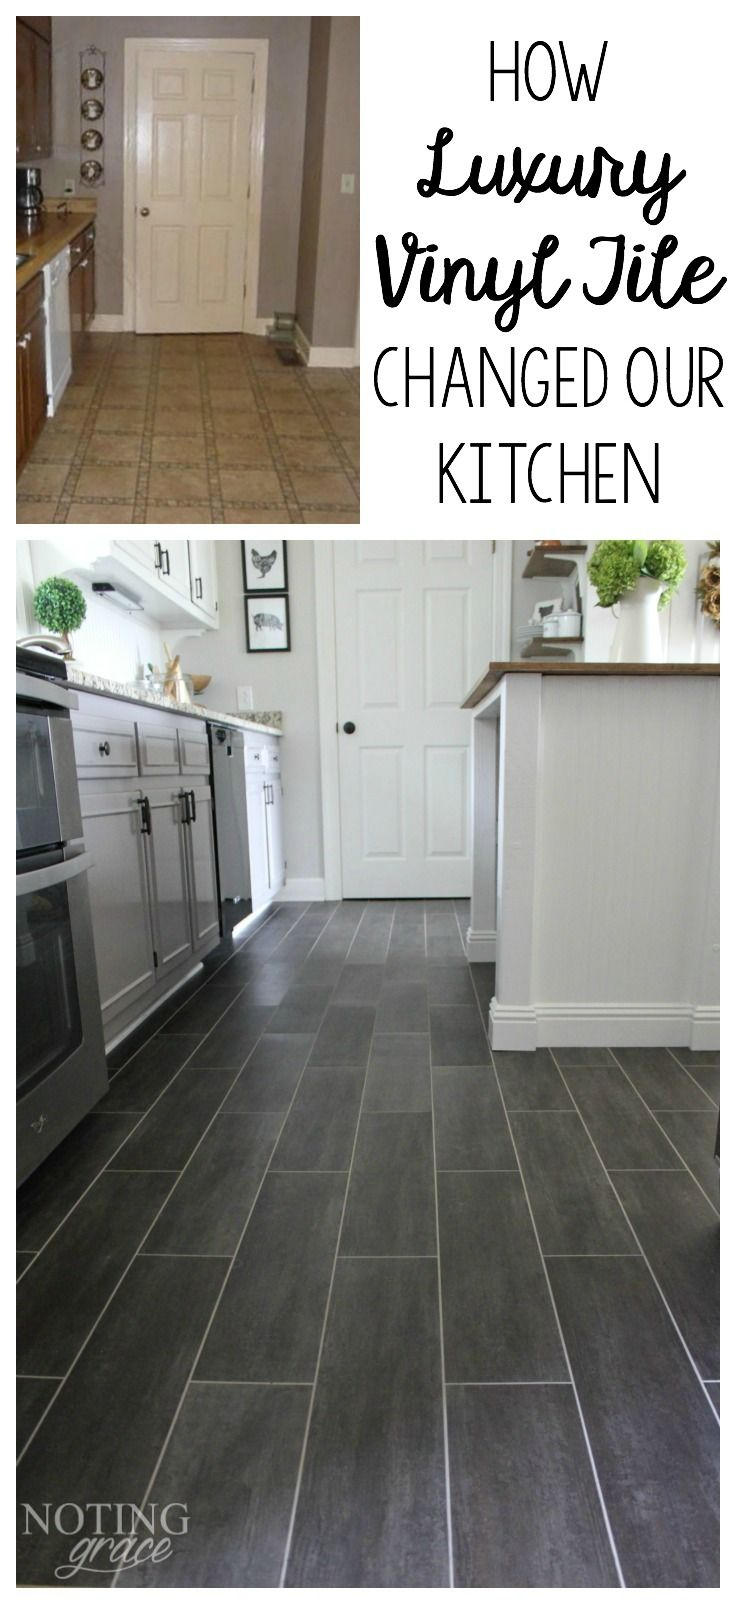 Diy kitchen flooring luxury vinyl tile vinyl tiles and for Kitchen vinyl flooring